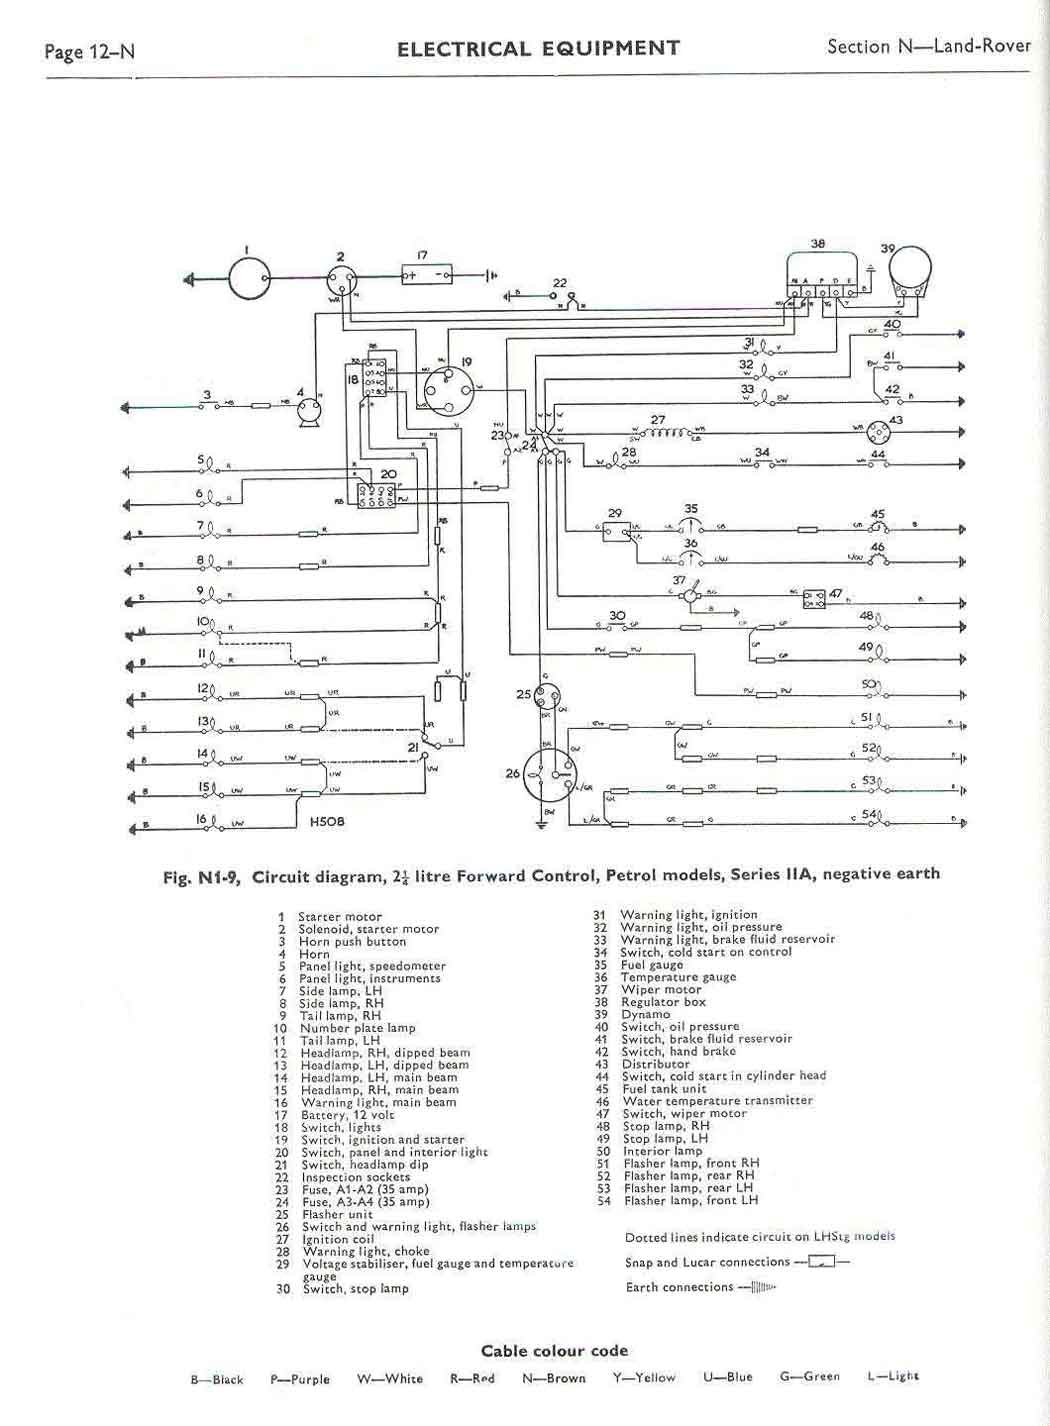 Renault Ac Wiring Diagram. renault midlum repair manual